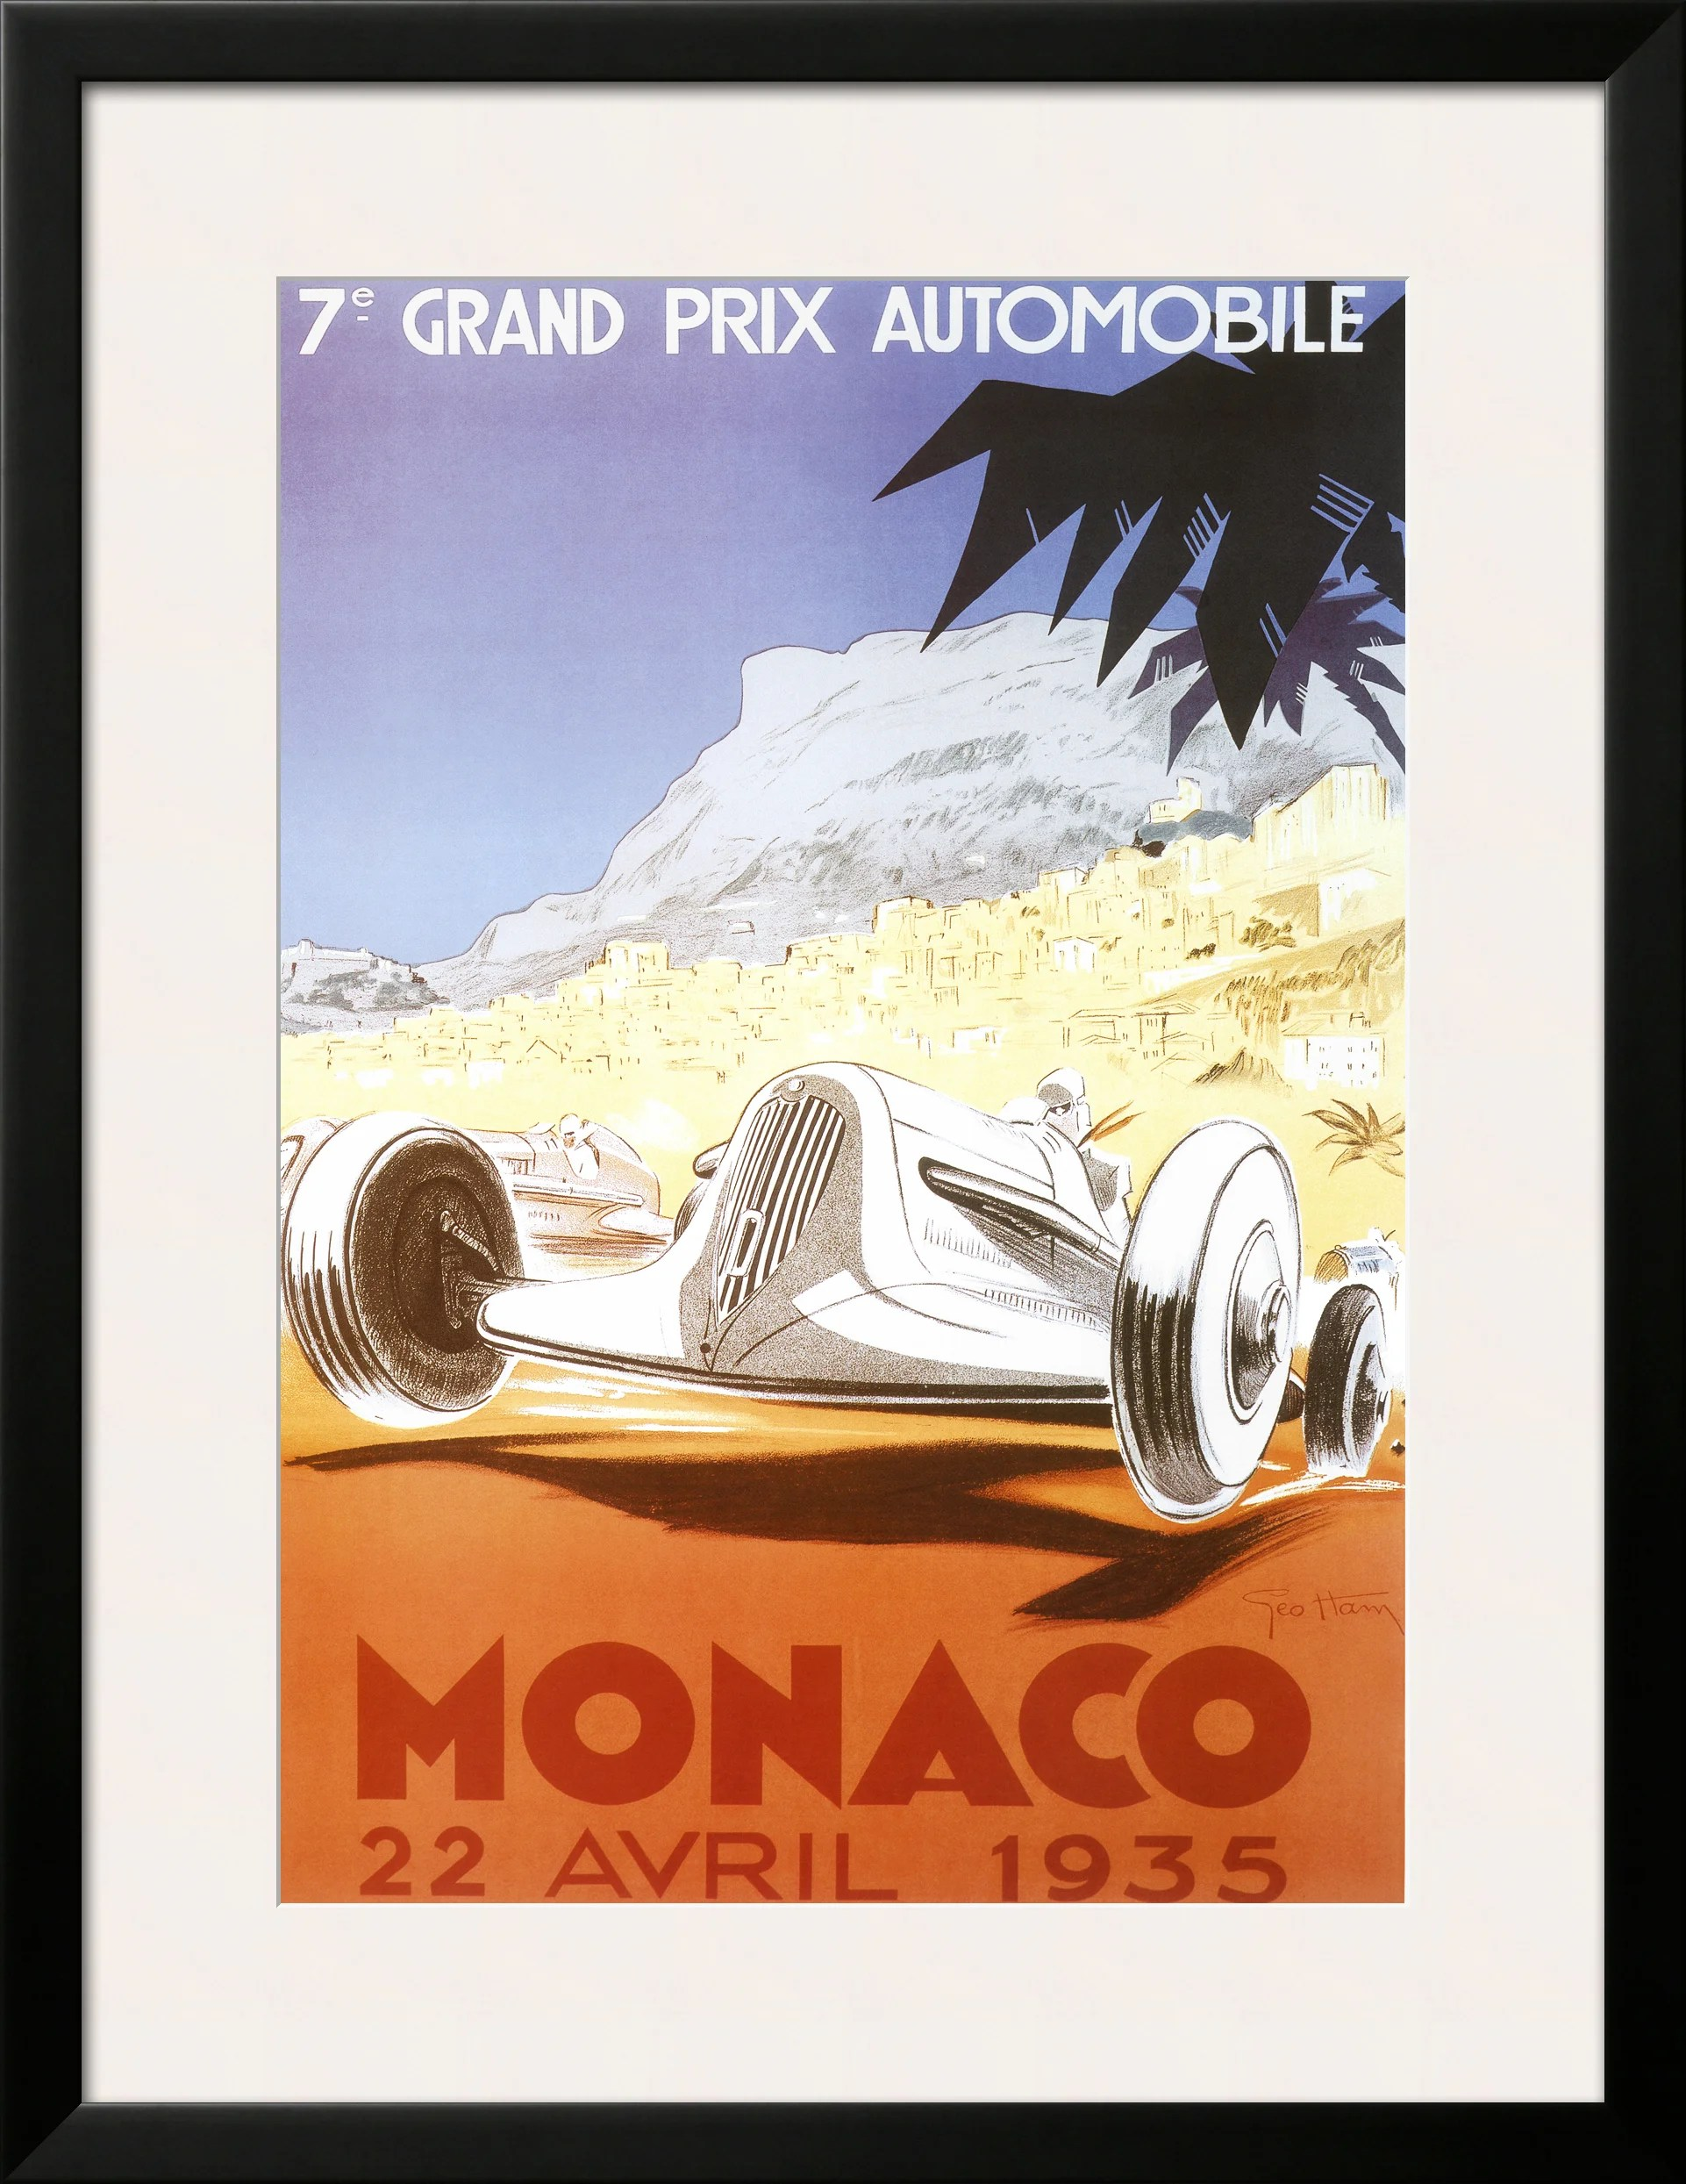 Piece Automobile Prix 7th Grand Prix Automobile Monaco 1935 By Geo Ham Framed Graphic Art